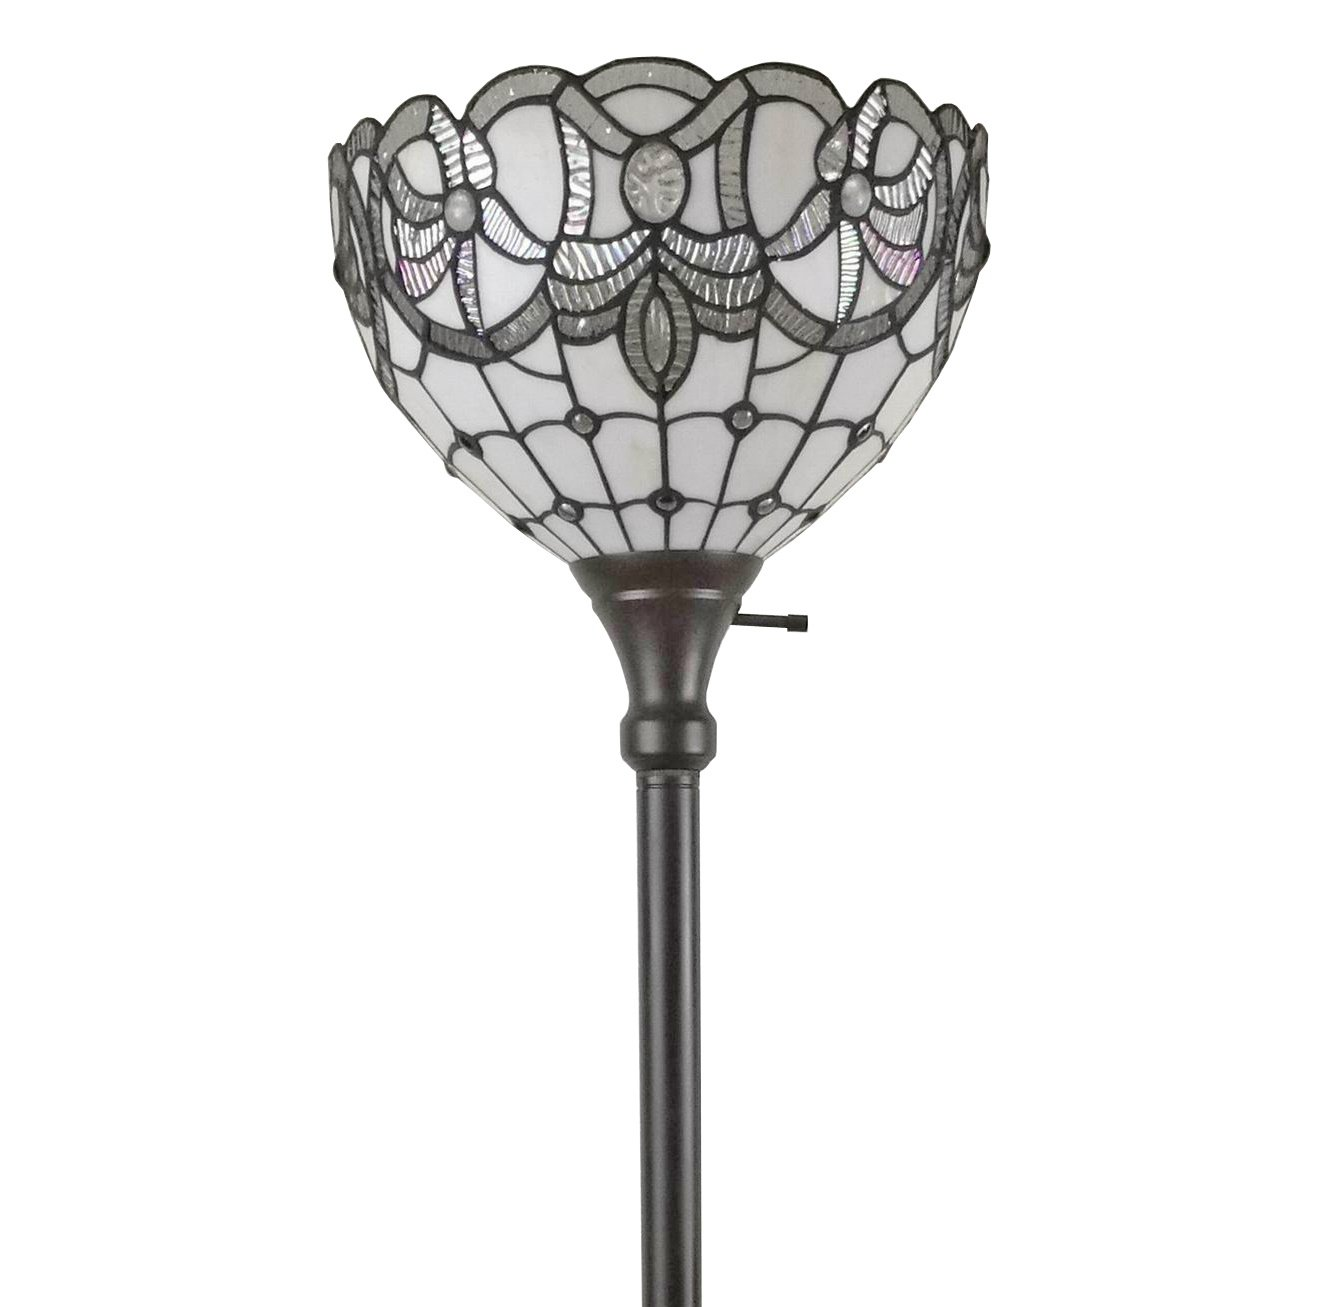 Amora Lighting Tiffany Style Floor Lamp Floral Torchiere Standing 72 Tall Stained Glass White Mahogany Antique Vintage Light Decor Bedroom Living Room Reading Gift AM284FL12, Multi-Colored